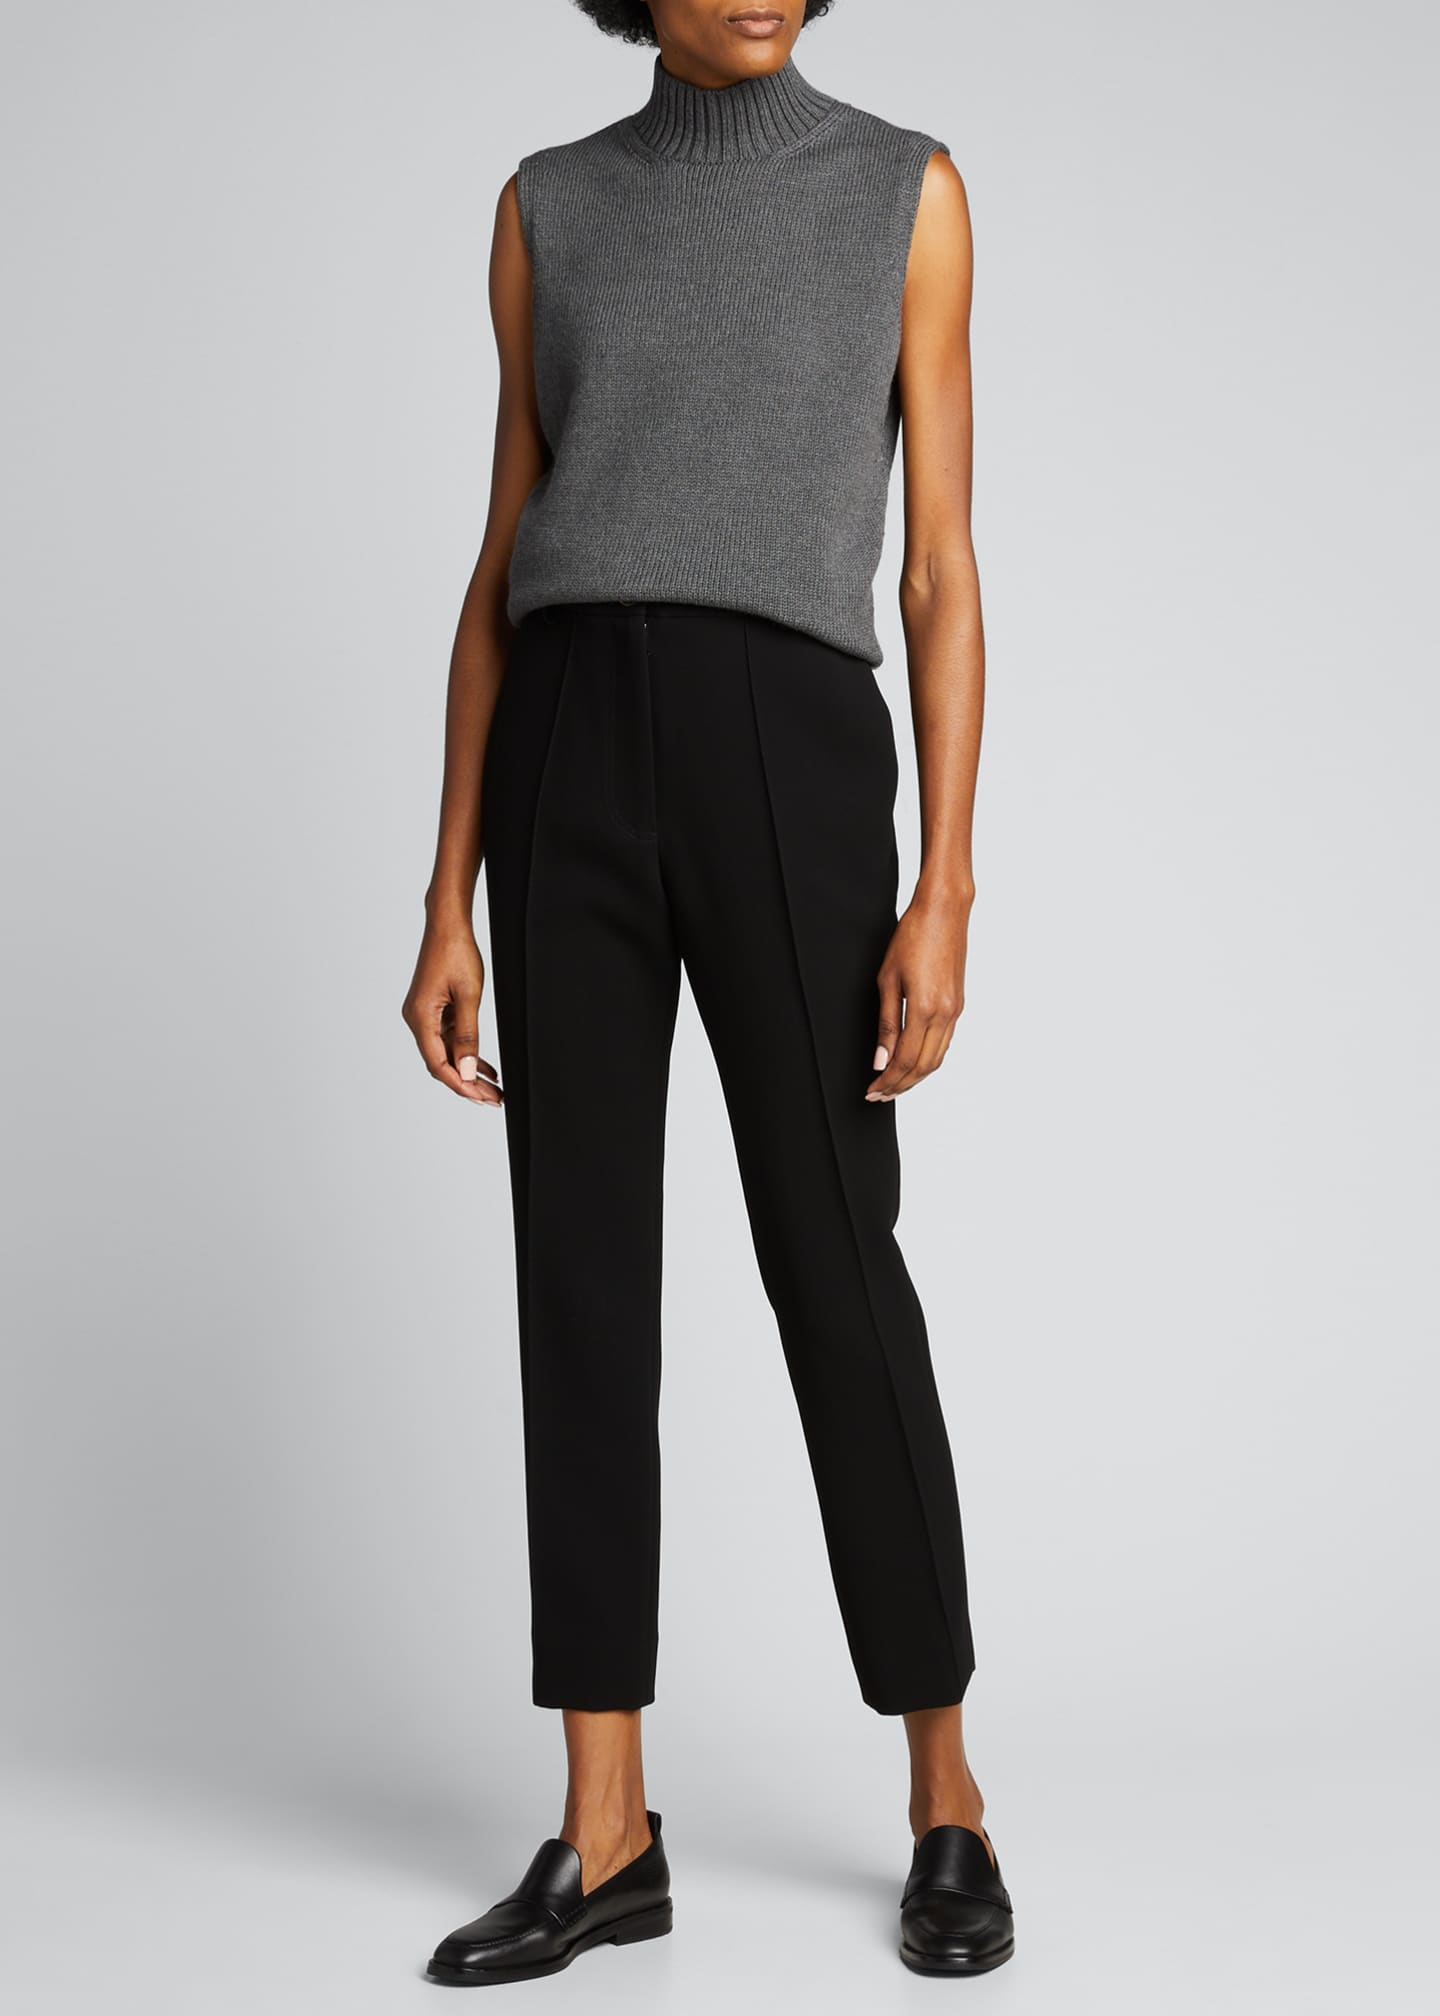 Image 1 of 5: Lofty Italian Virgin Wool Sleeveless Turtleneck Top